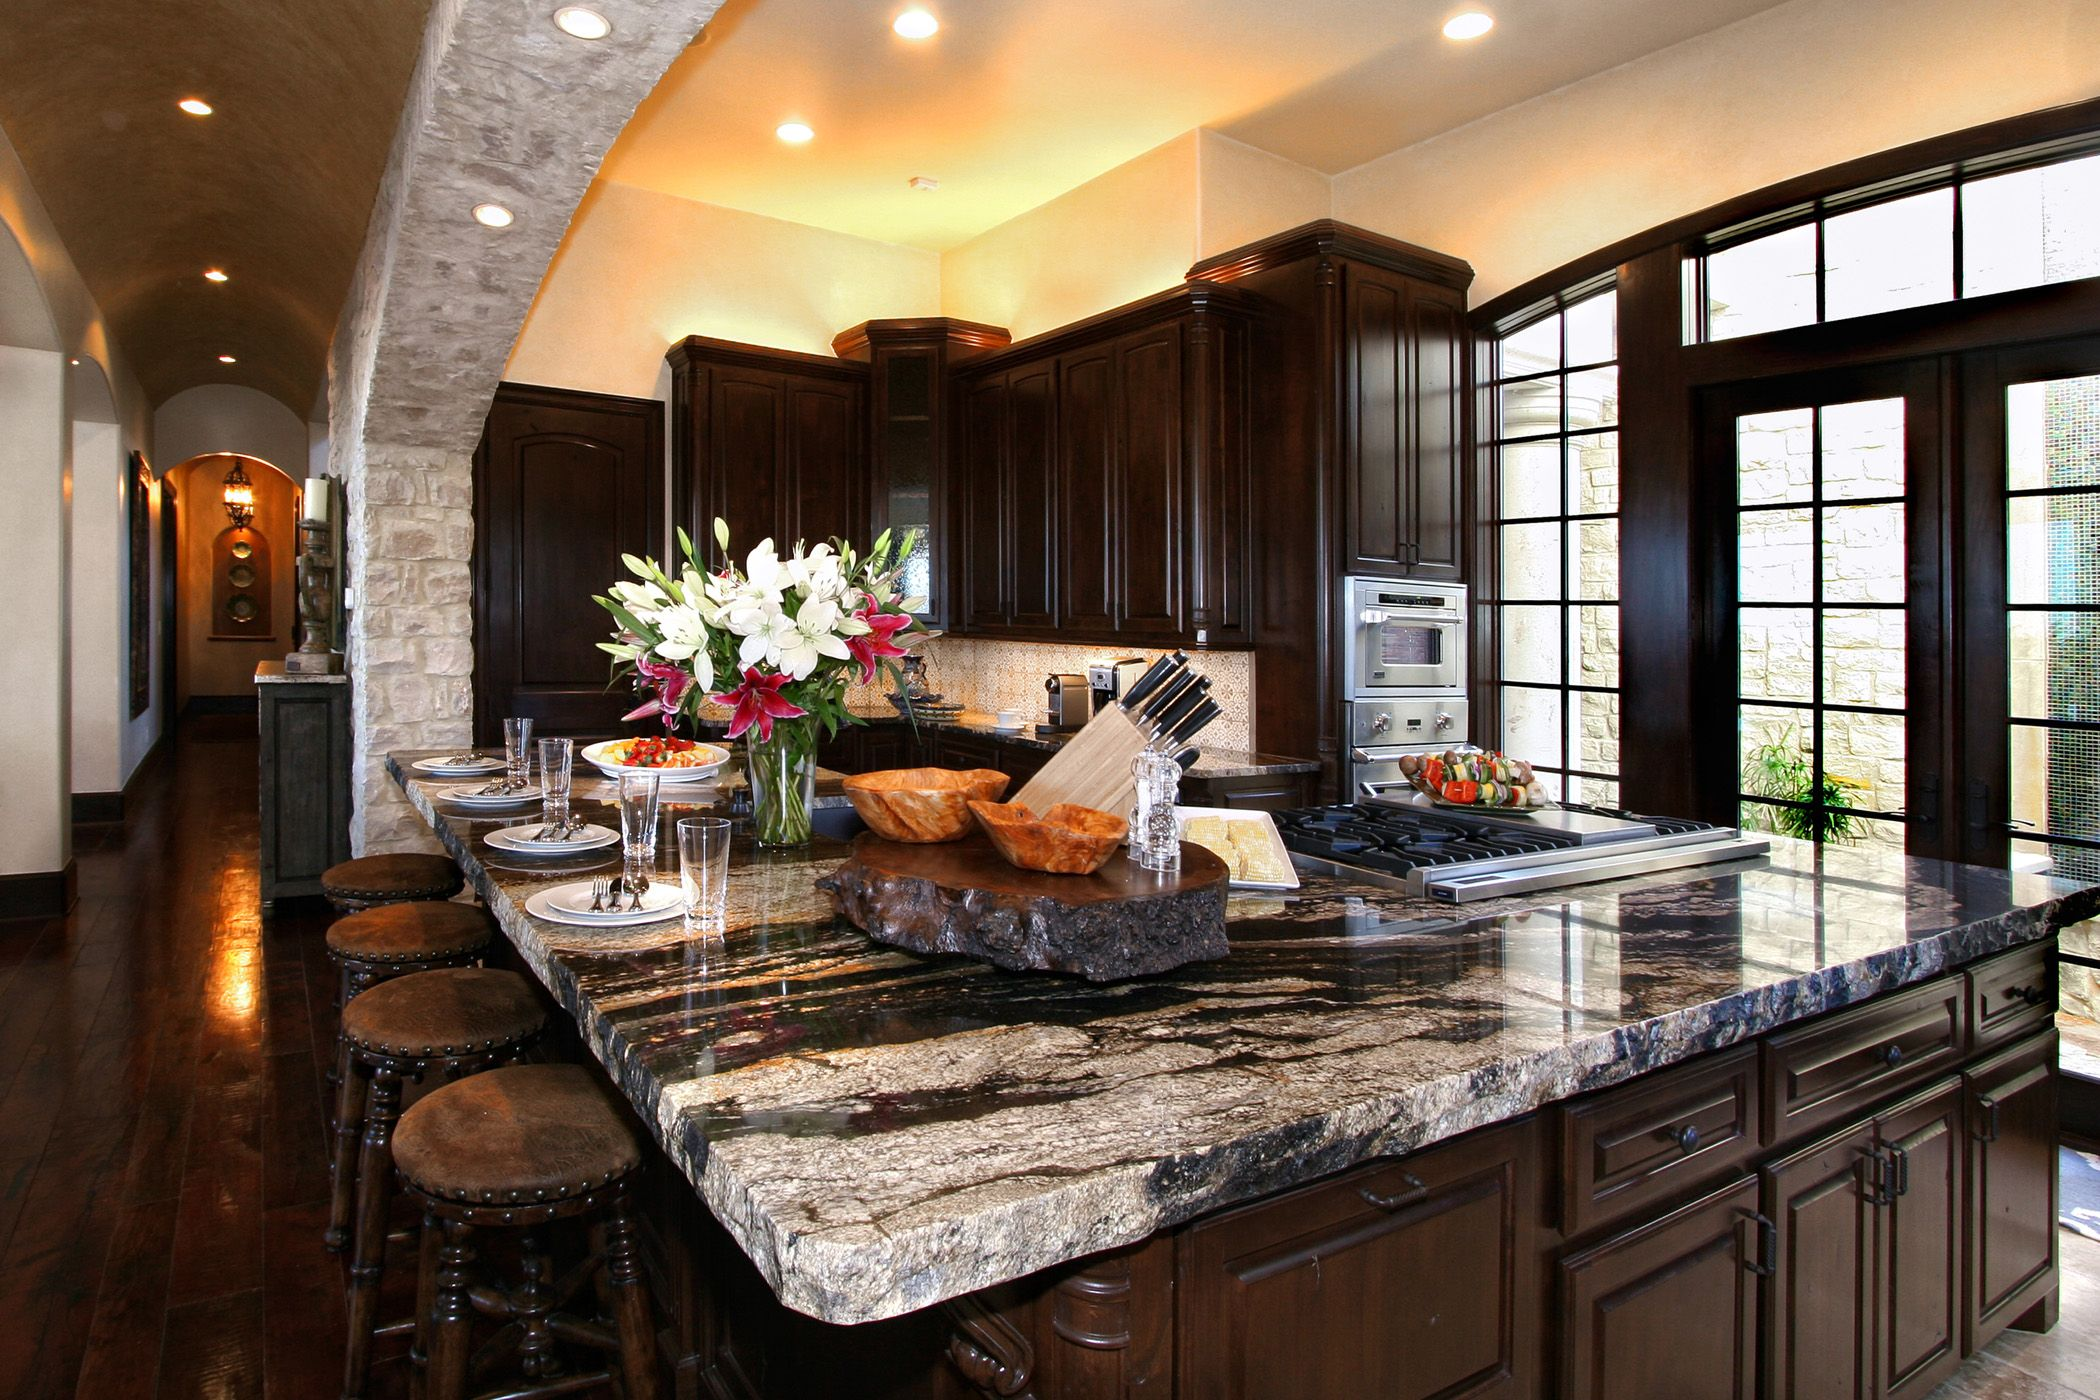 Beau Black And Grey Granite Countertop Connected By Black Wooden Kitchen Cabinet  And Some Small Patching Lamps